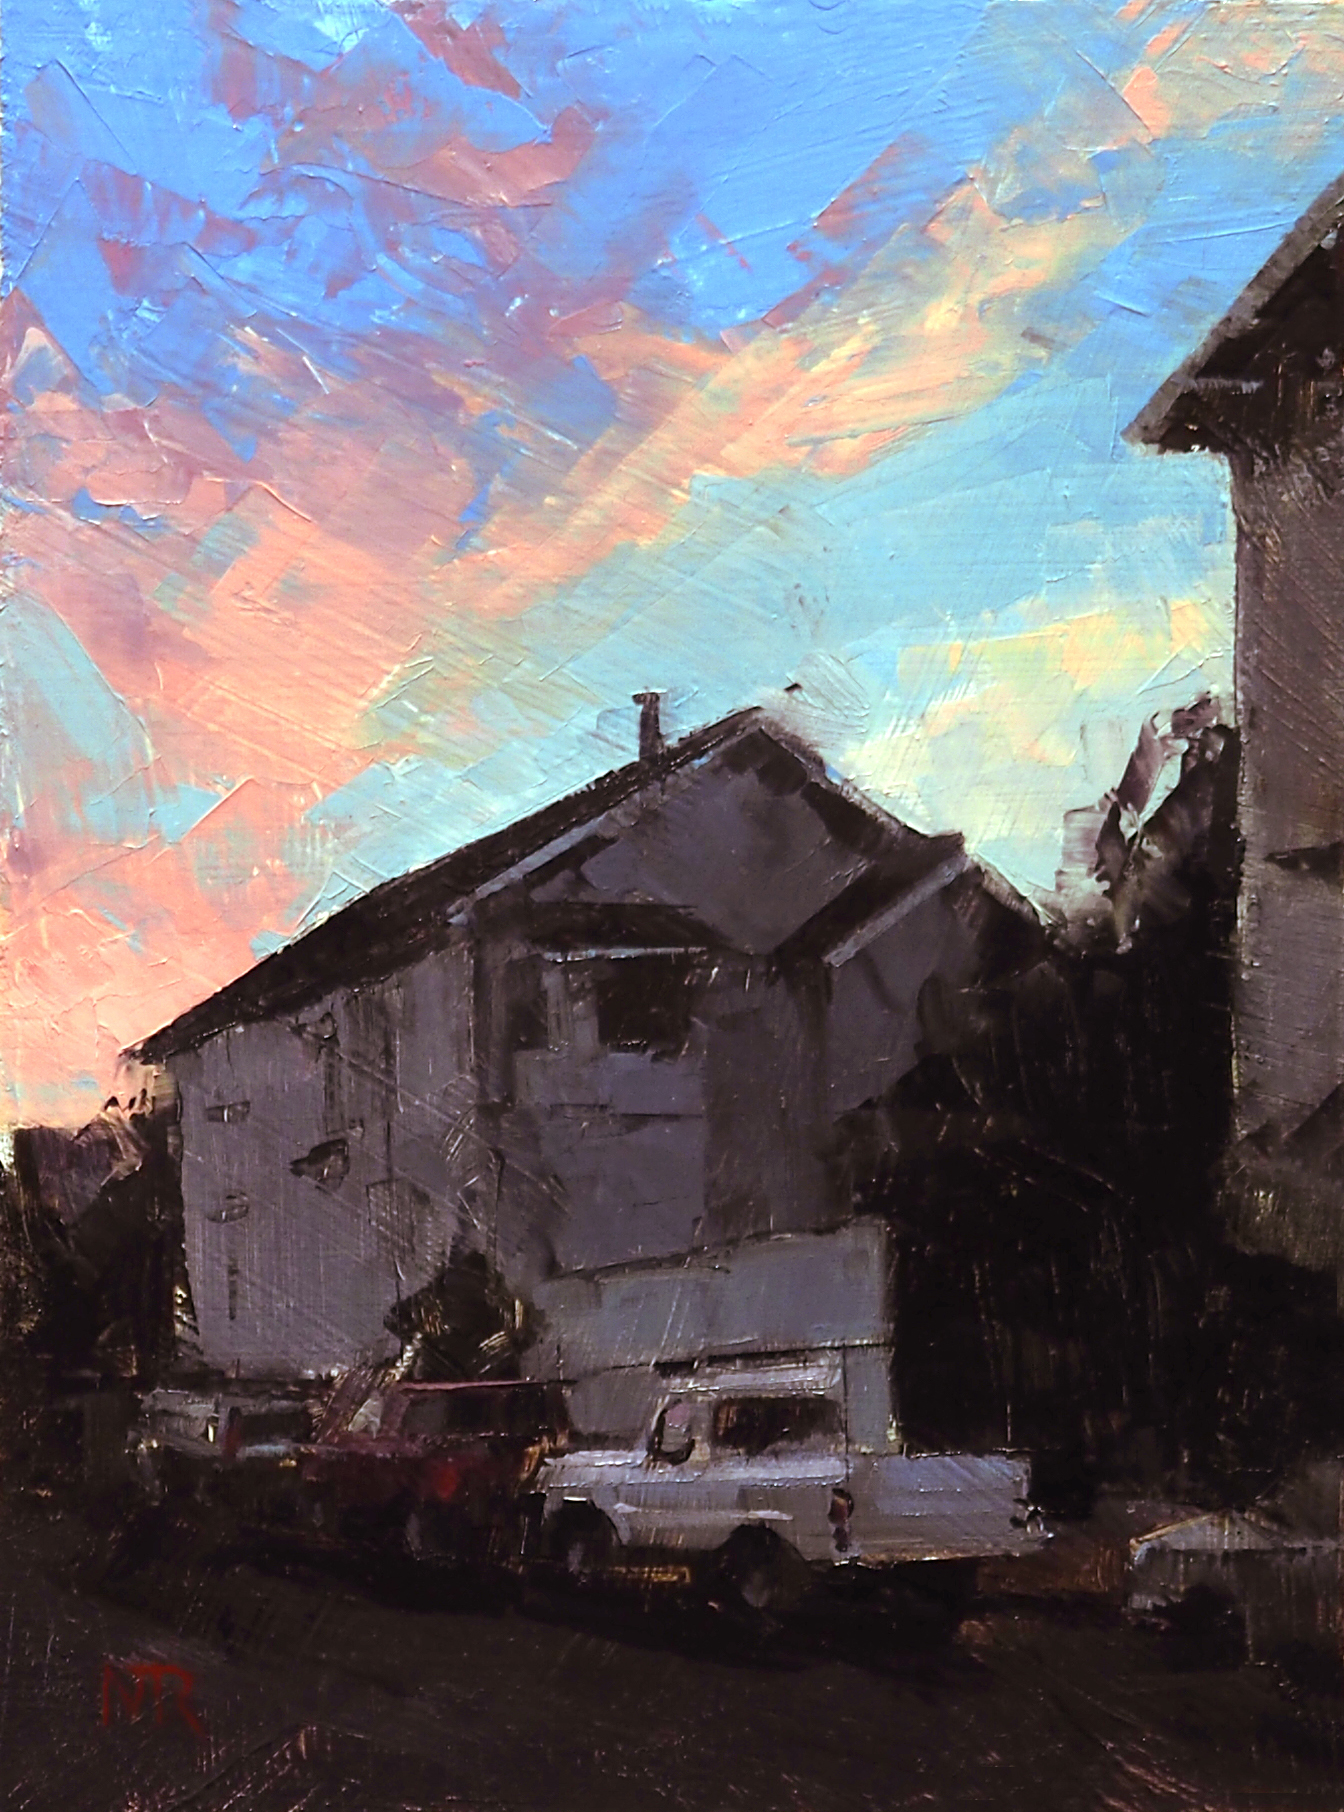 Study of Neighborhood at Dusk